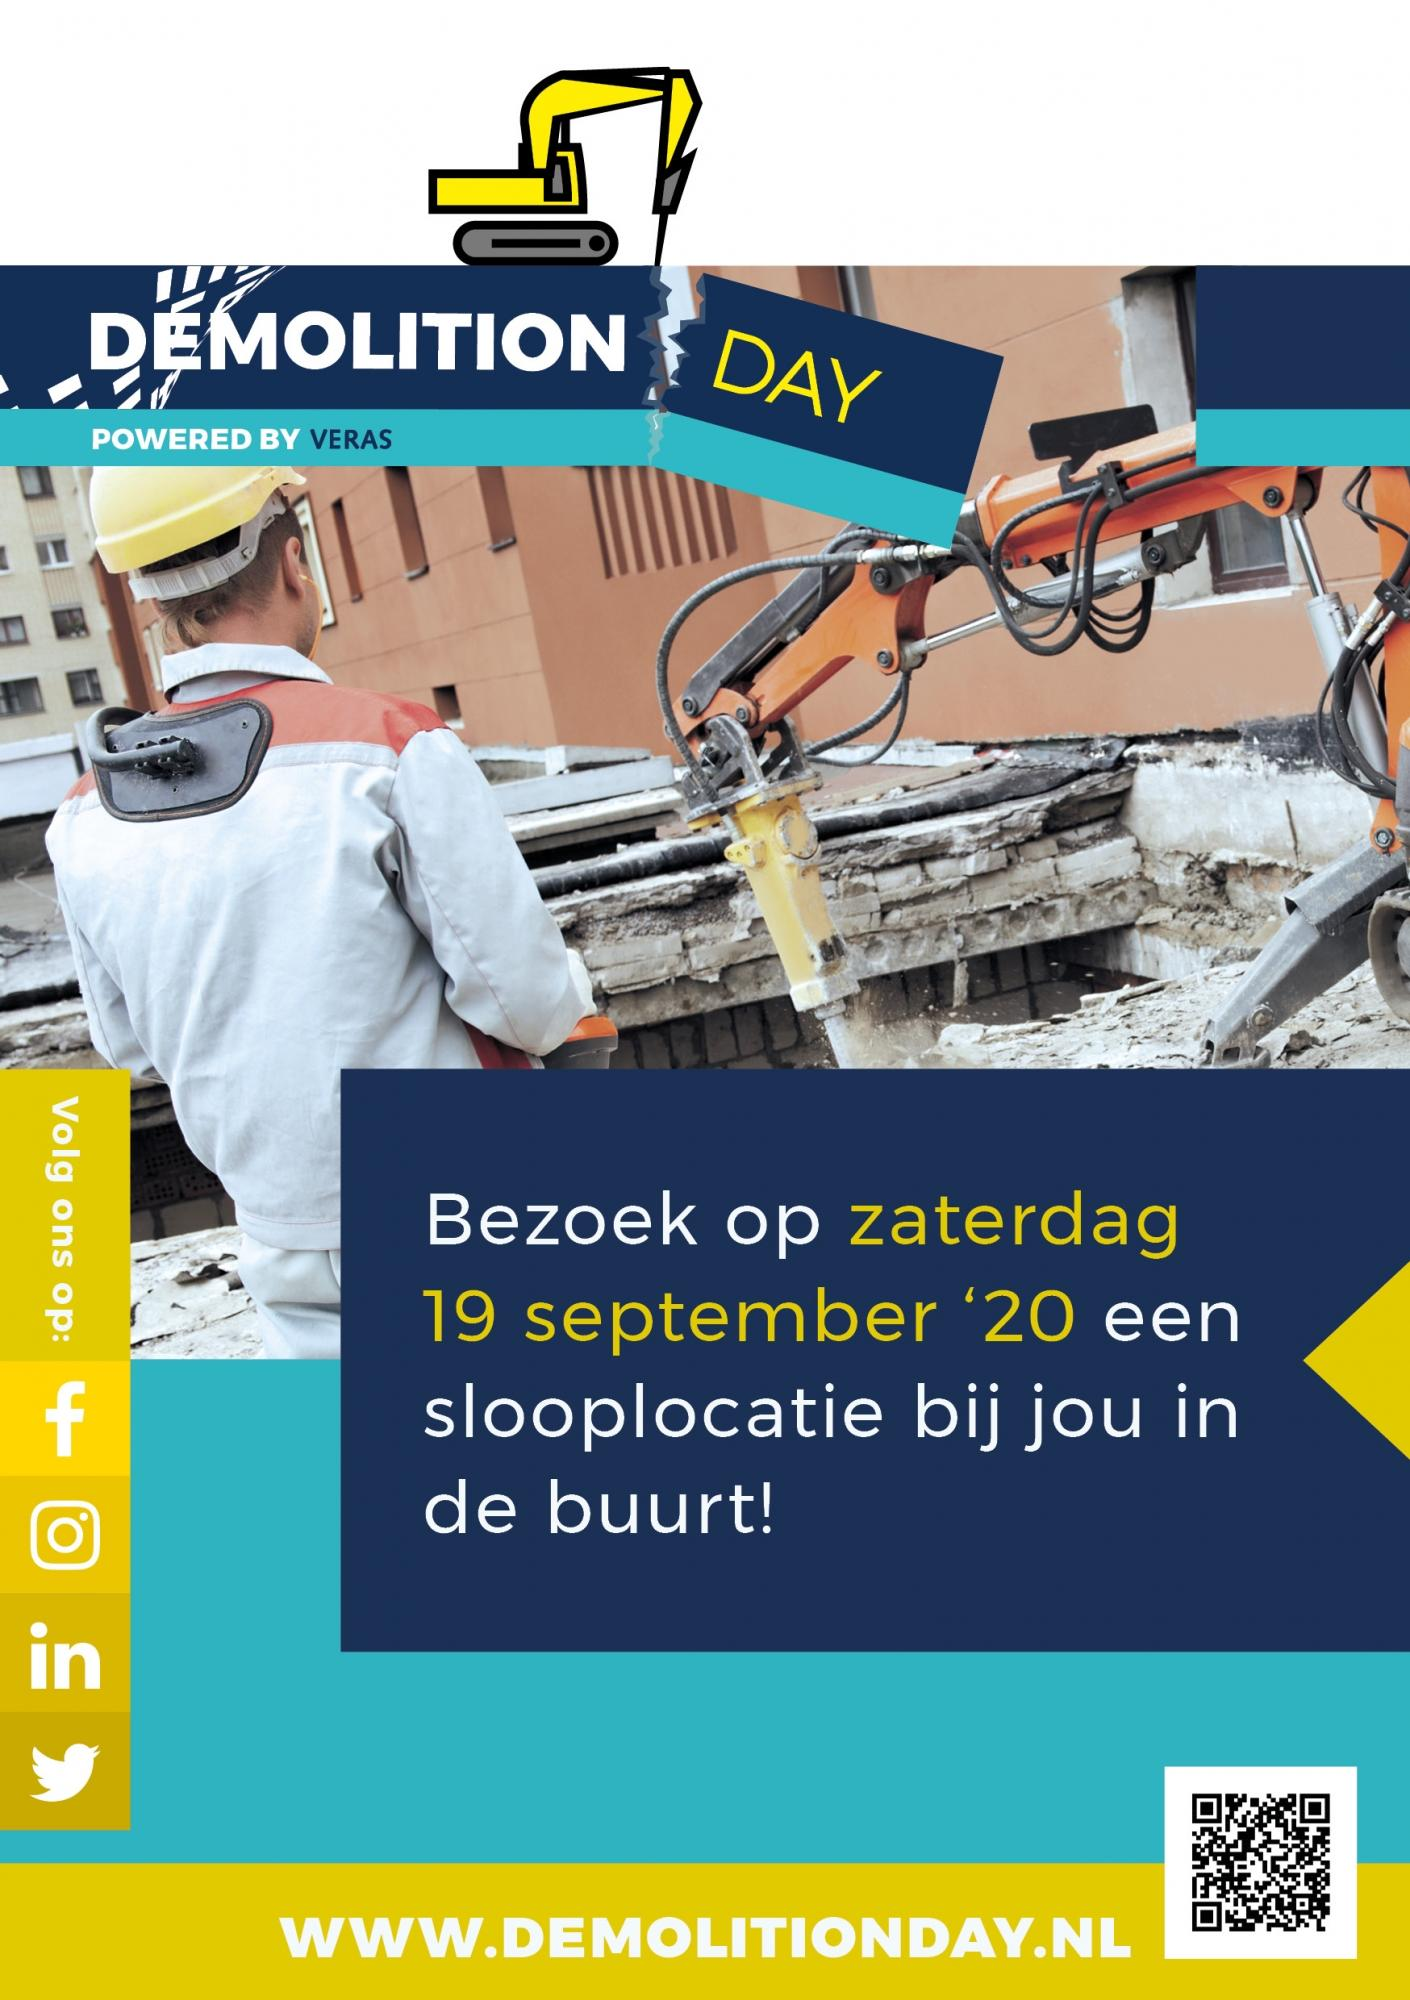 Demolition Day 2020